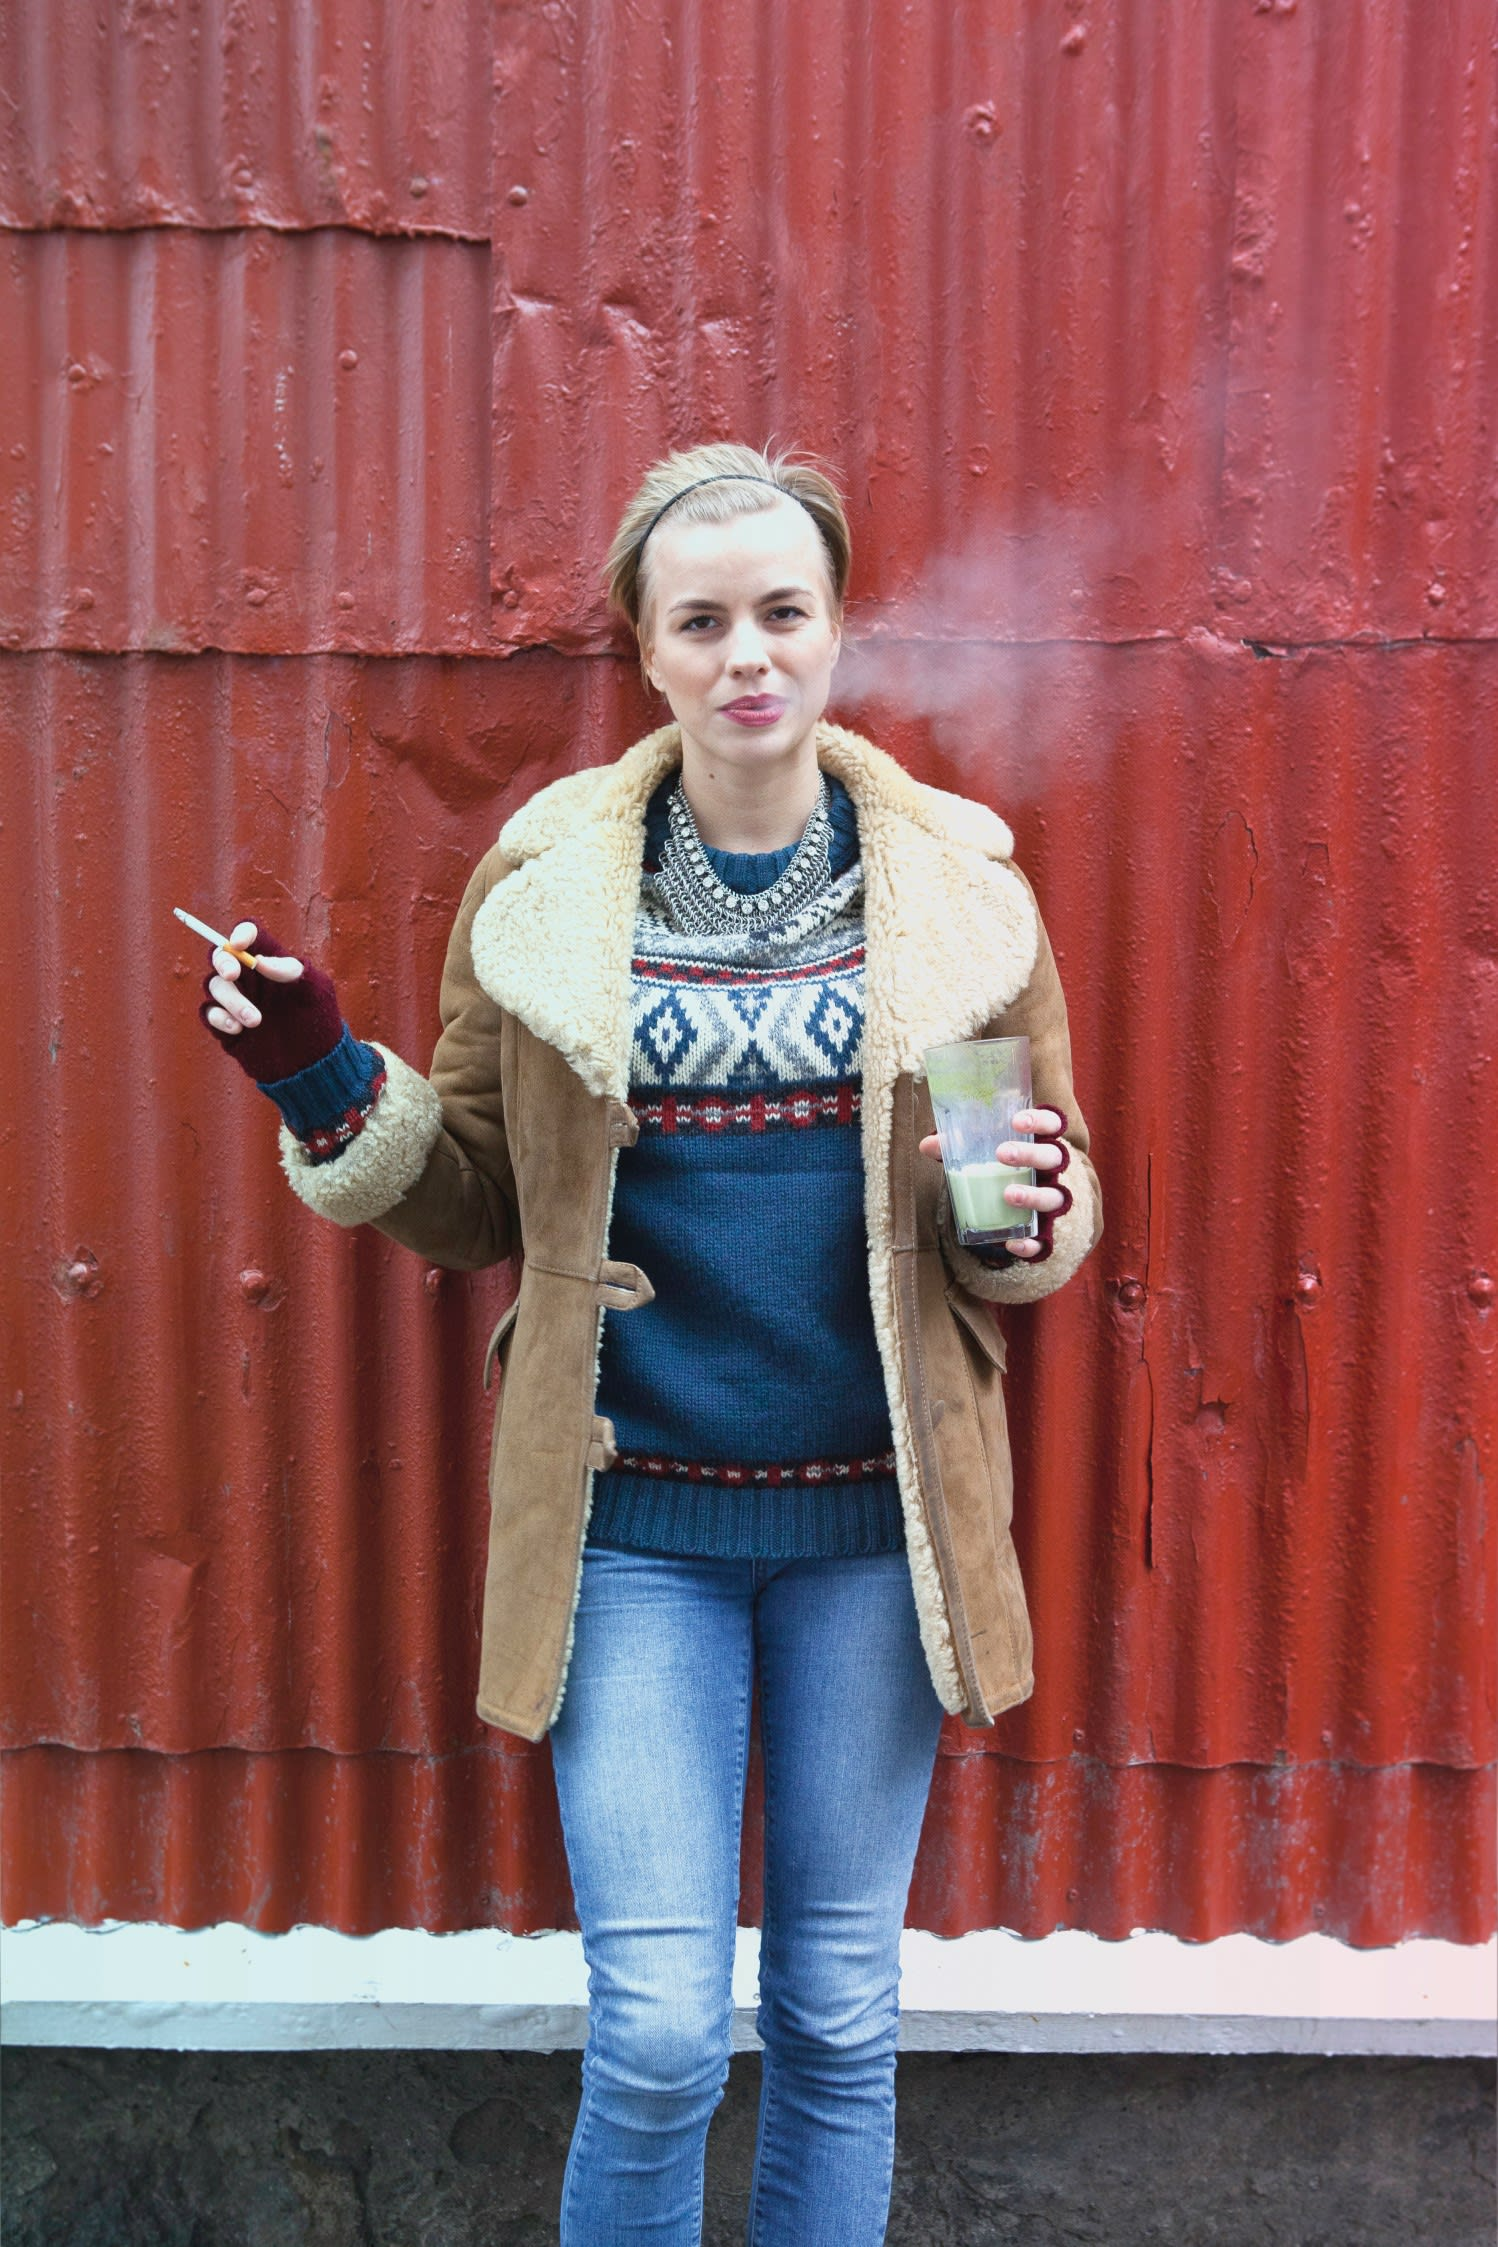 a woman standing against a red corrugated metal building wearing a blue Icelandic sweater with a green drink in one hand and a cigarette in the other